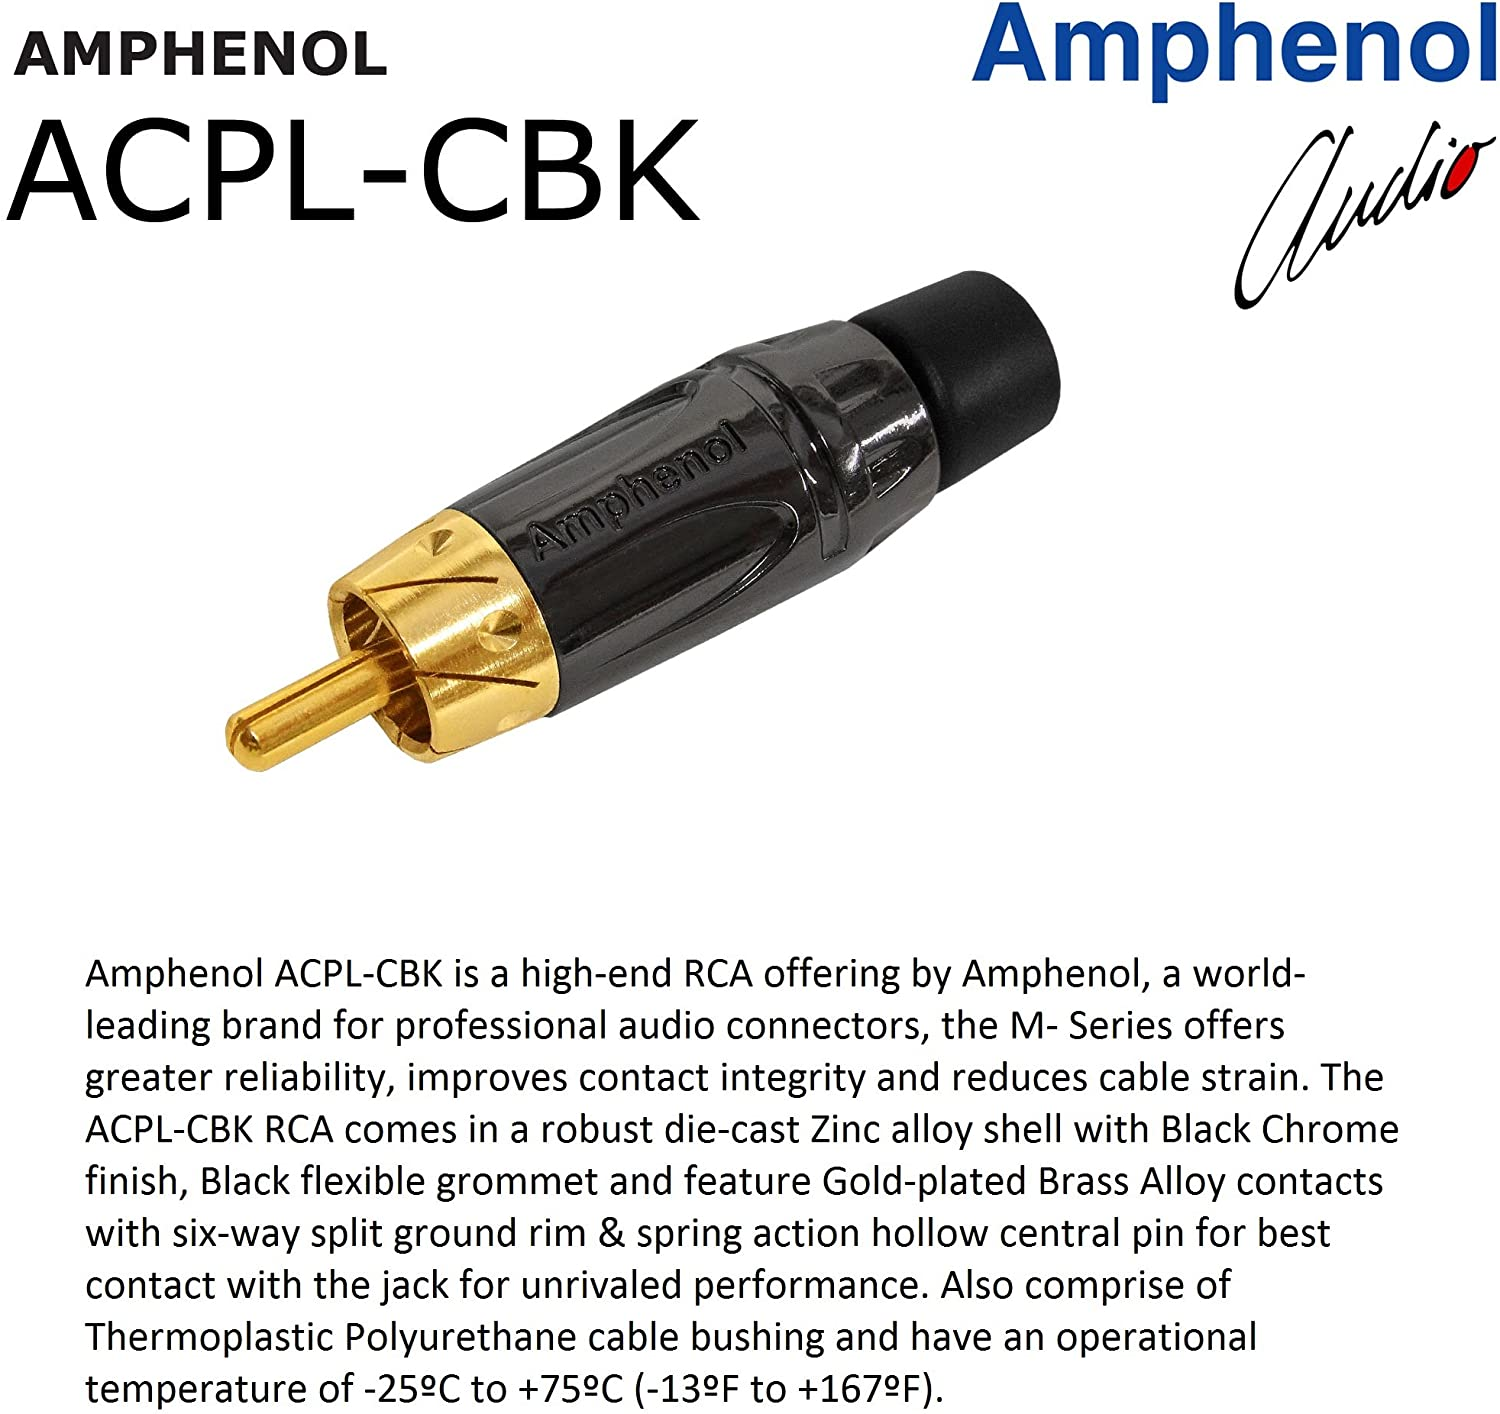 Directional Gold Plated RCA Connectors Black 1 Foot RCA Cable Pair Gotham GAC-4//1 Star-Quad Audio Interconnect Cable with Amphenol ACPL Black Chrome Body